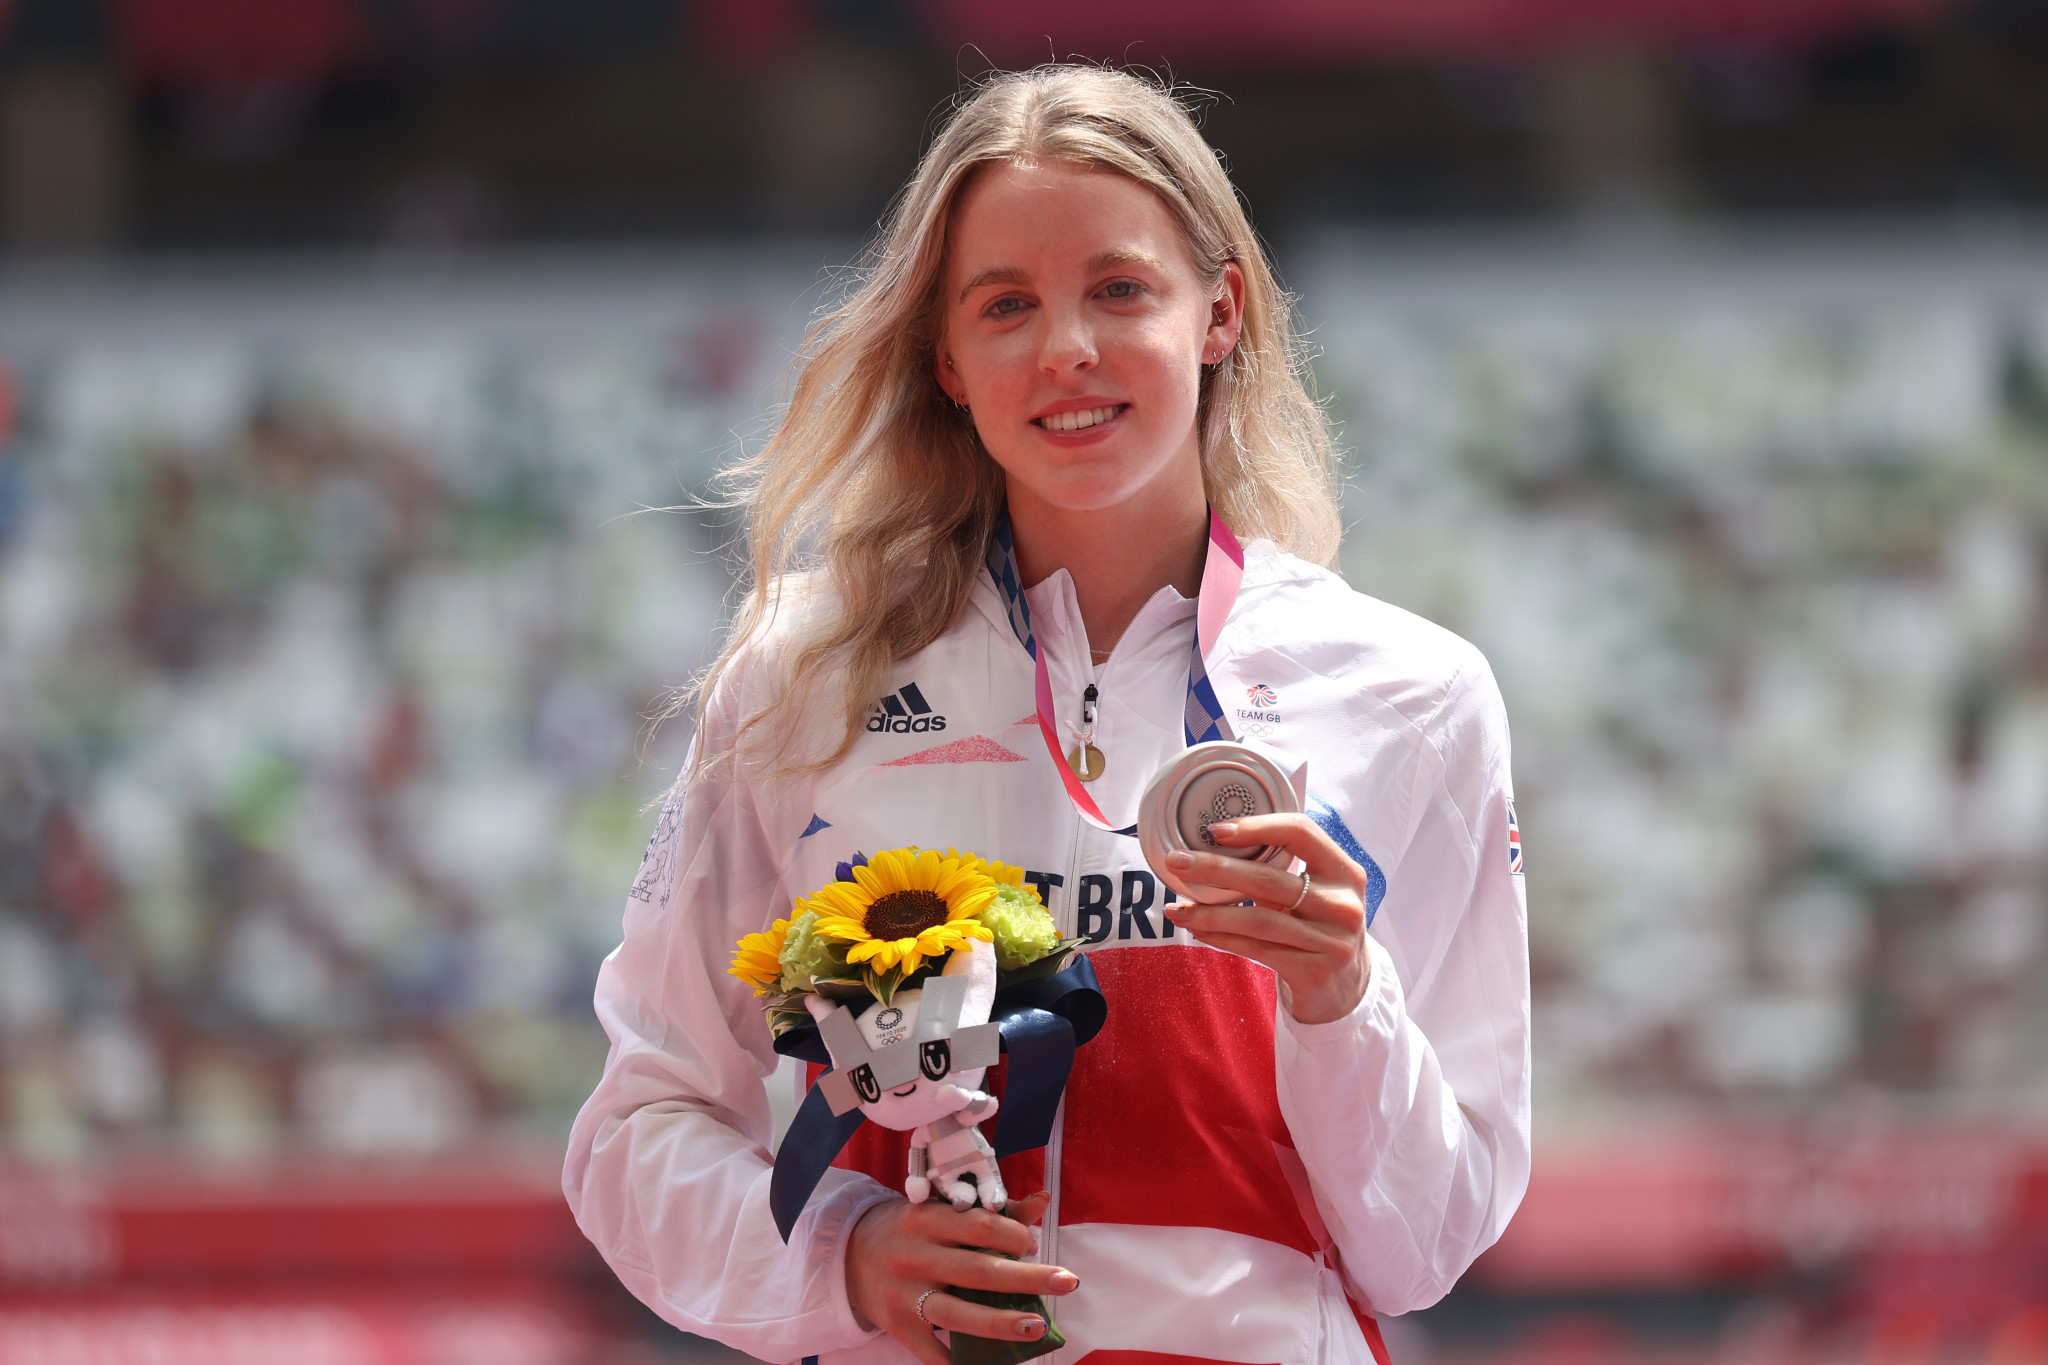 Keely Hodgkinson was one of just six British athletics medal winners at the Tokyo 2020 Olympics ©Getty Images